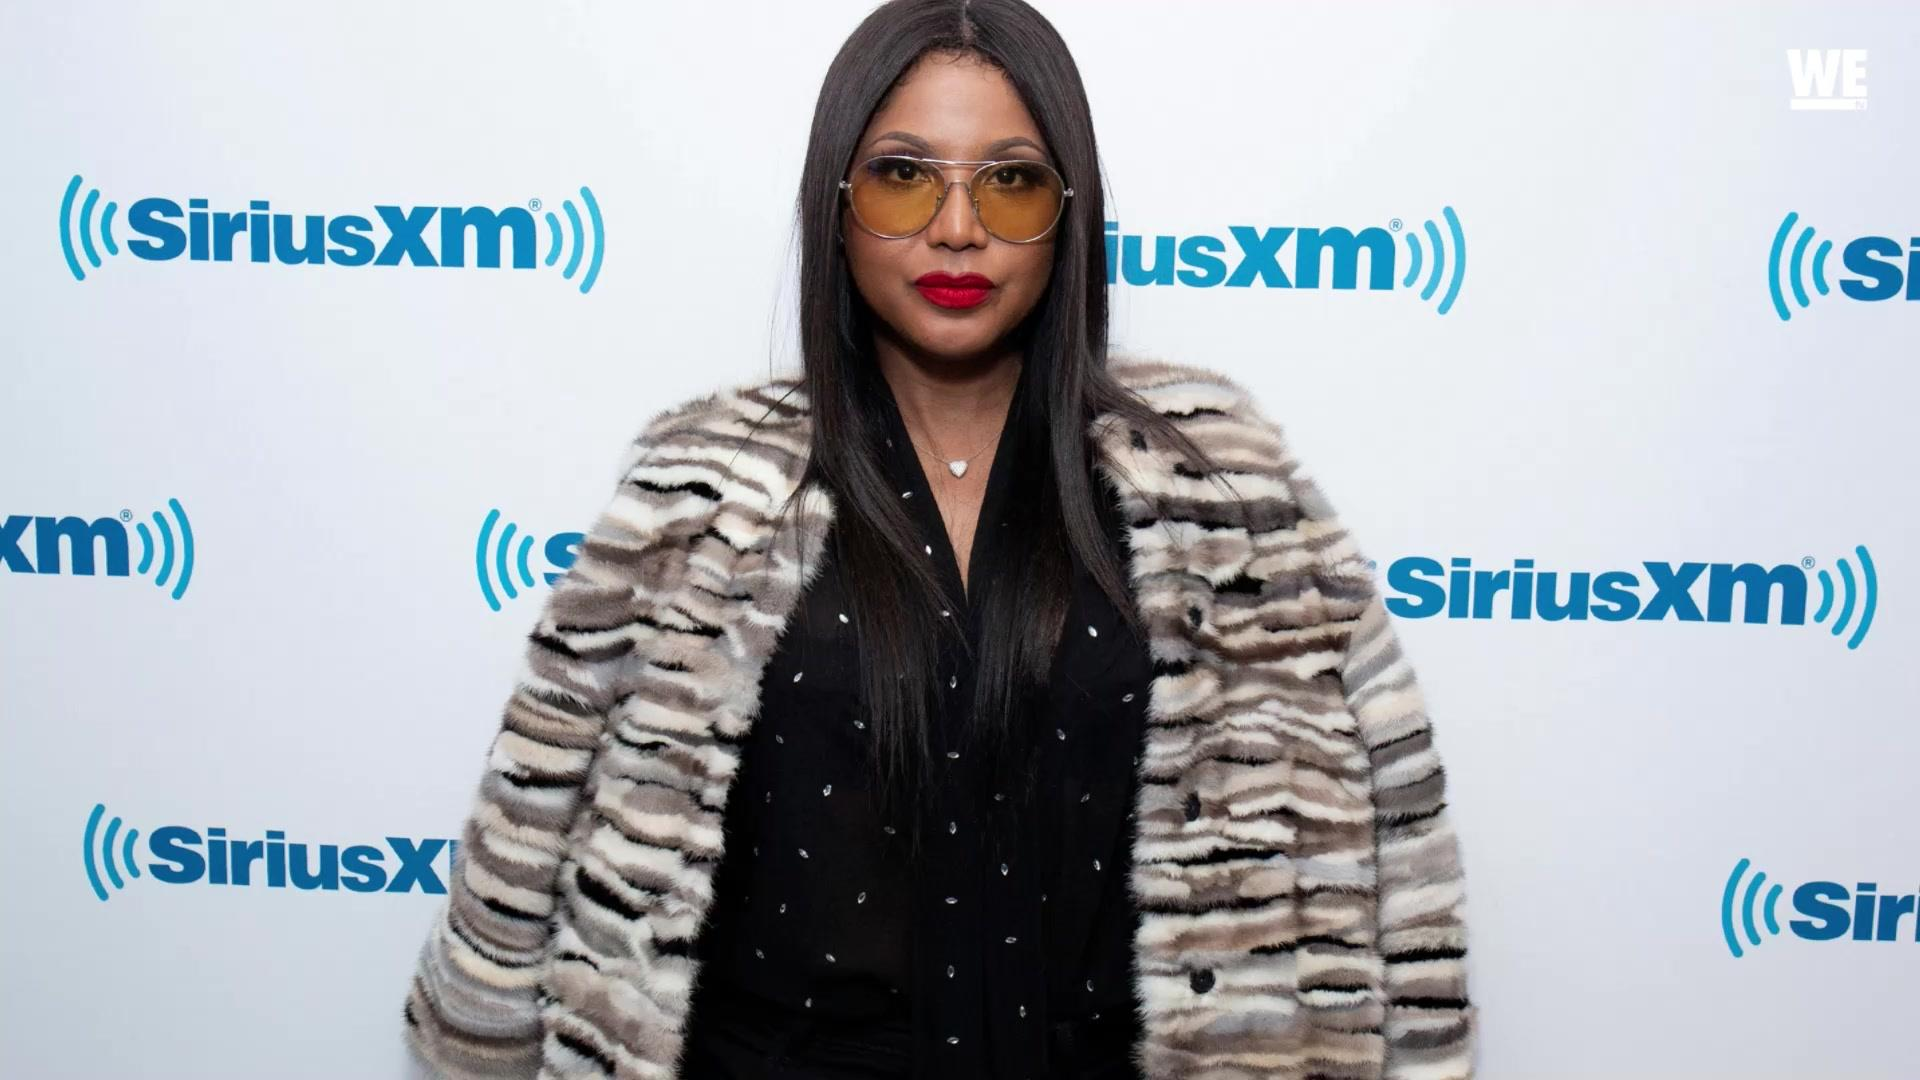 Toni Braxton Hangs Out With Victoria Beckham And Calls Her A 'Genius And Glam Goddess'